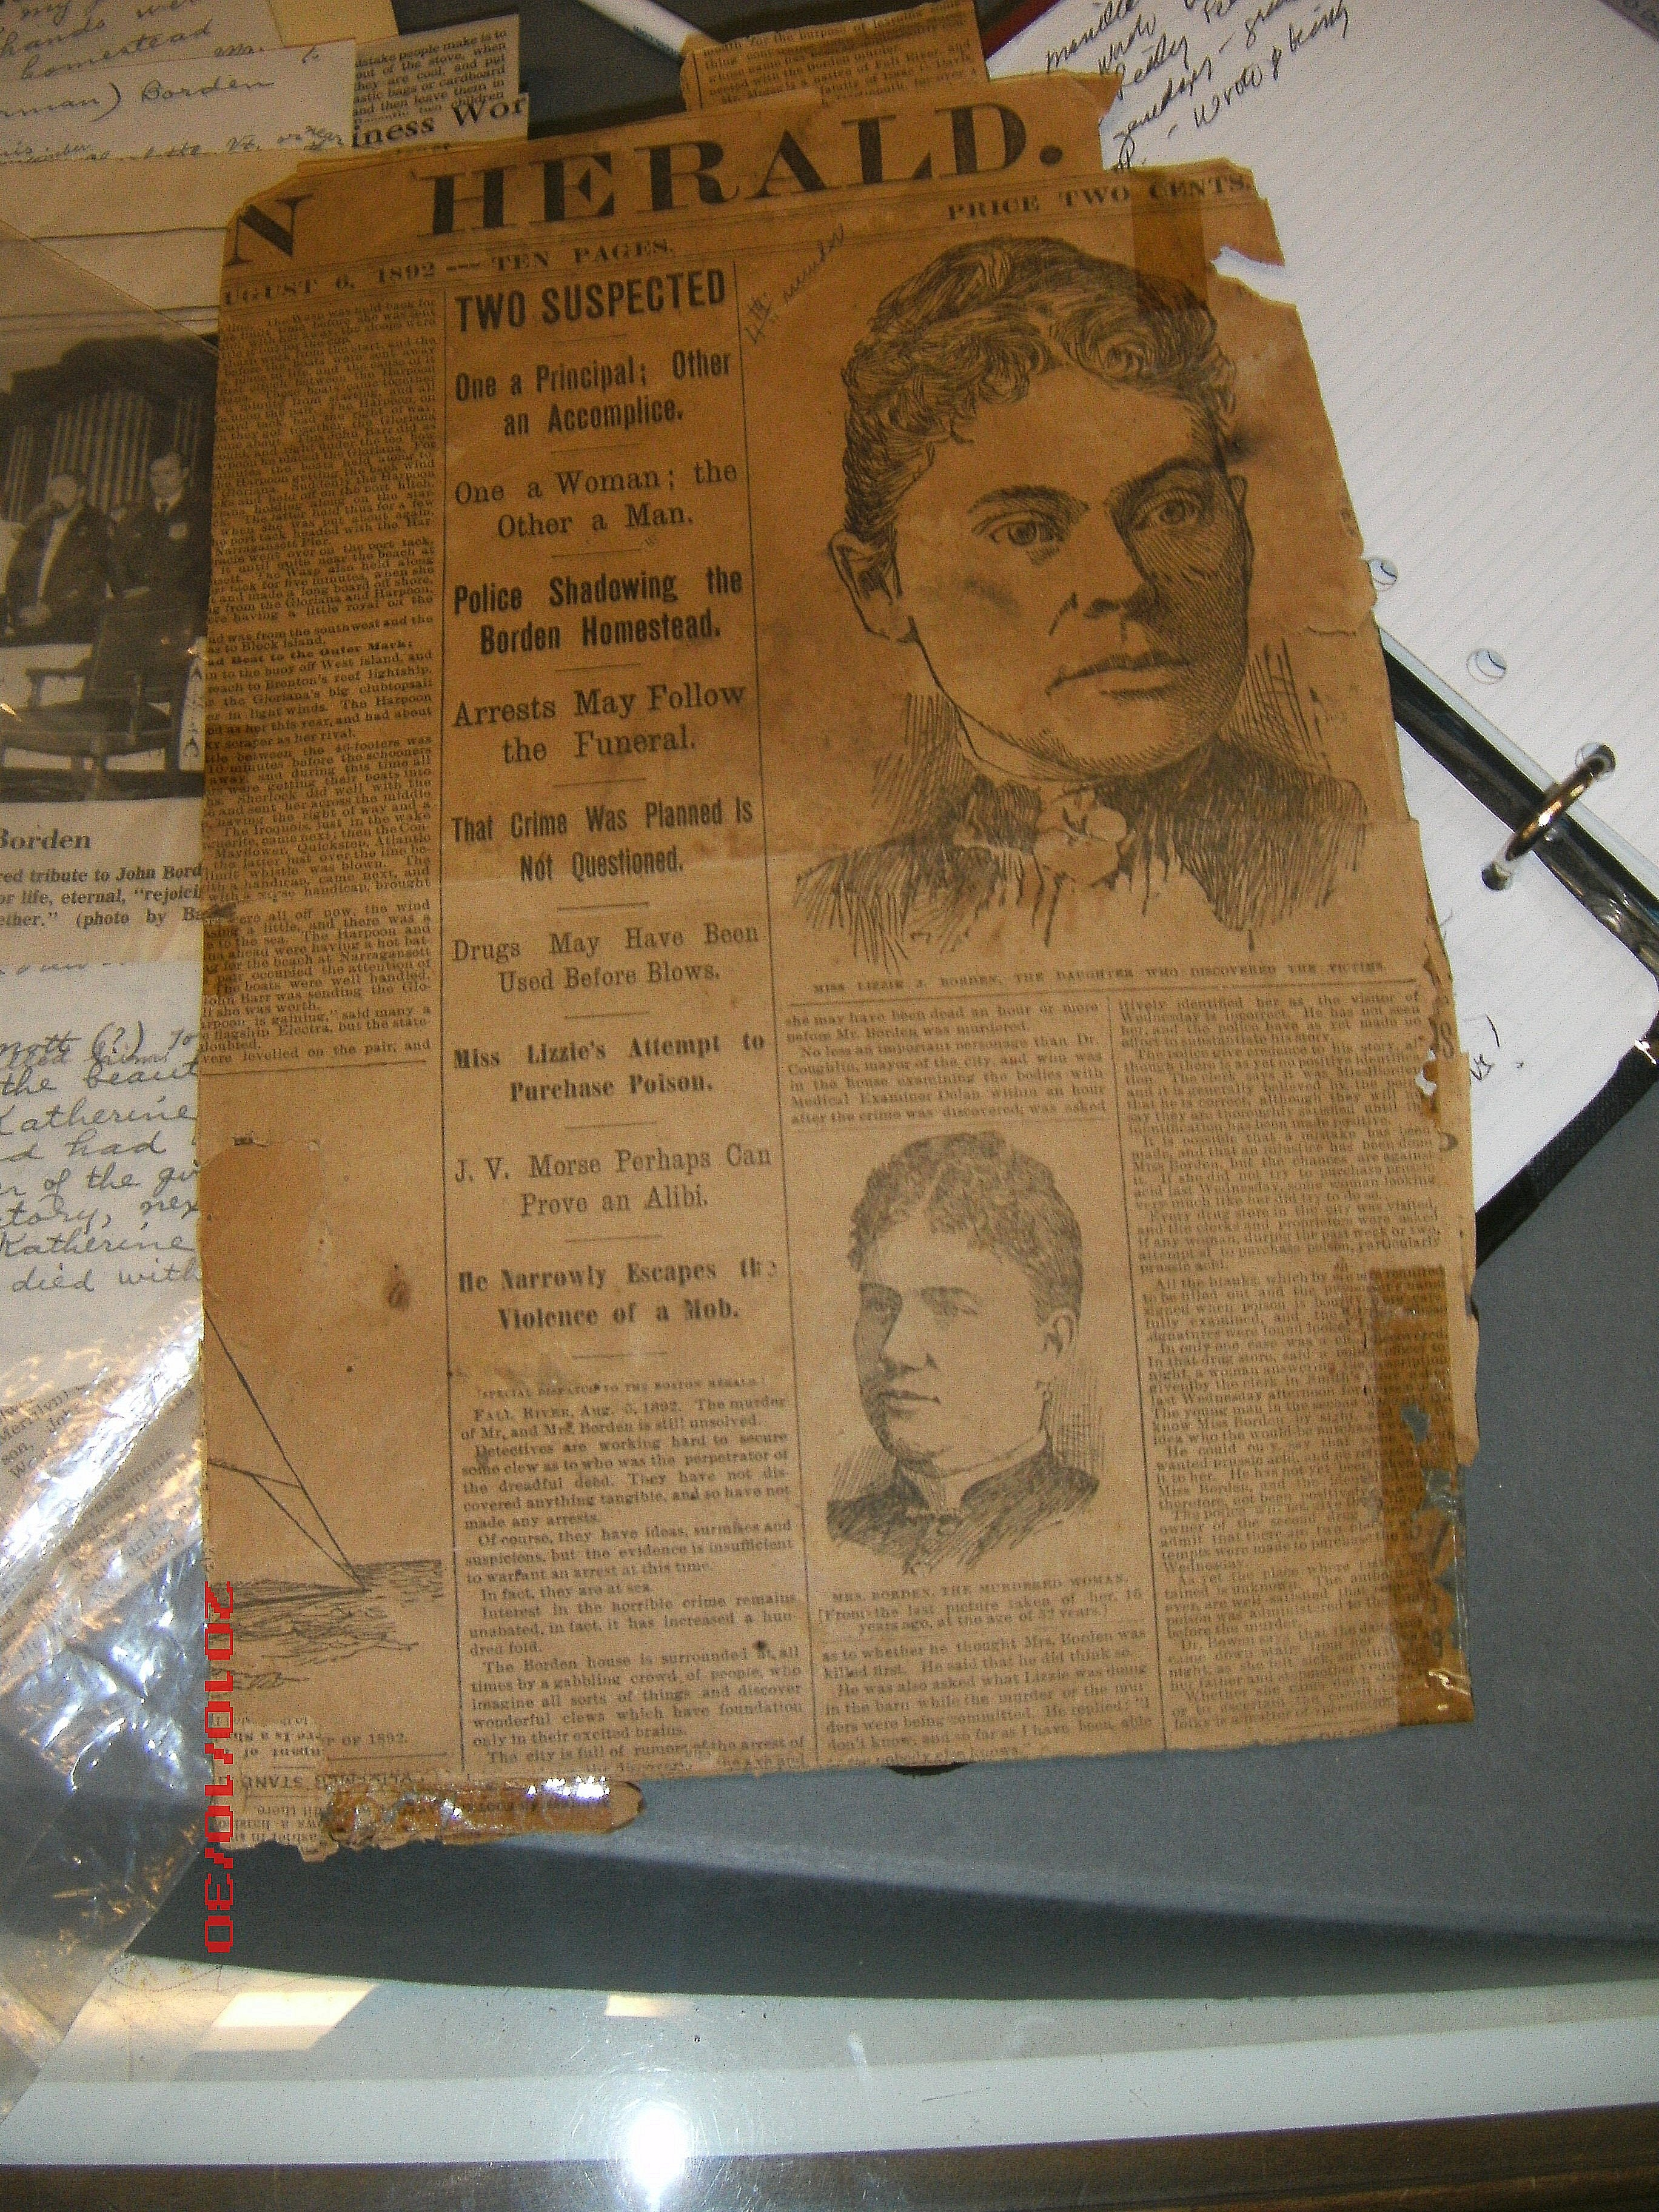 March 1 1912 john vinnicum morse dies in hastings iowa at the age of